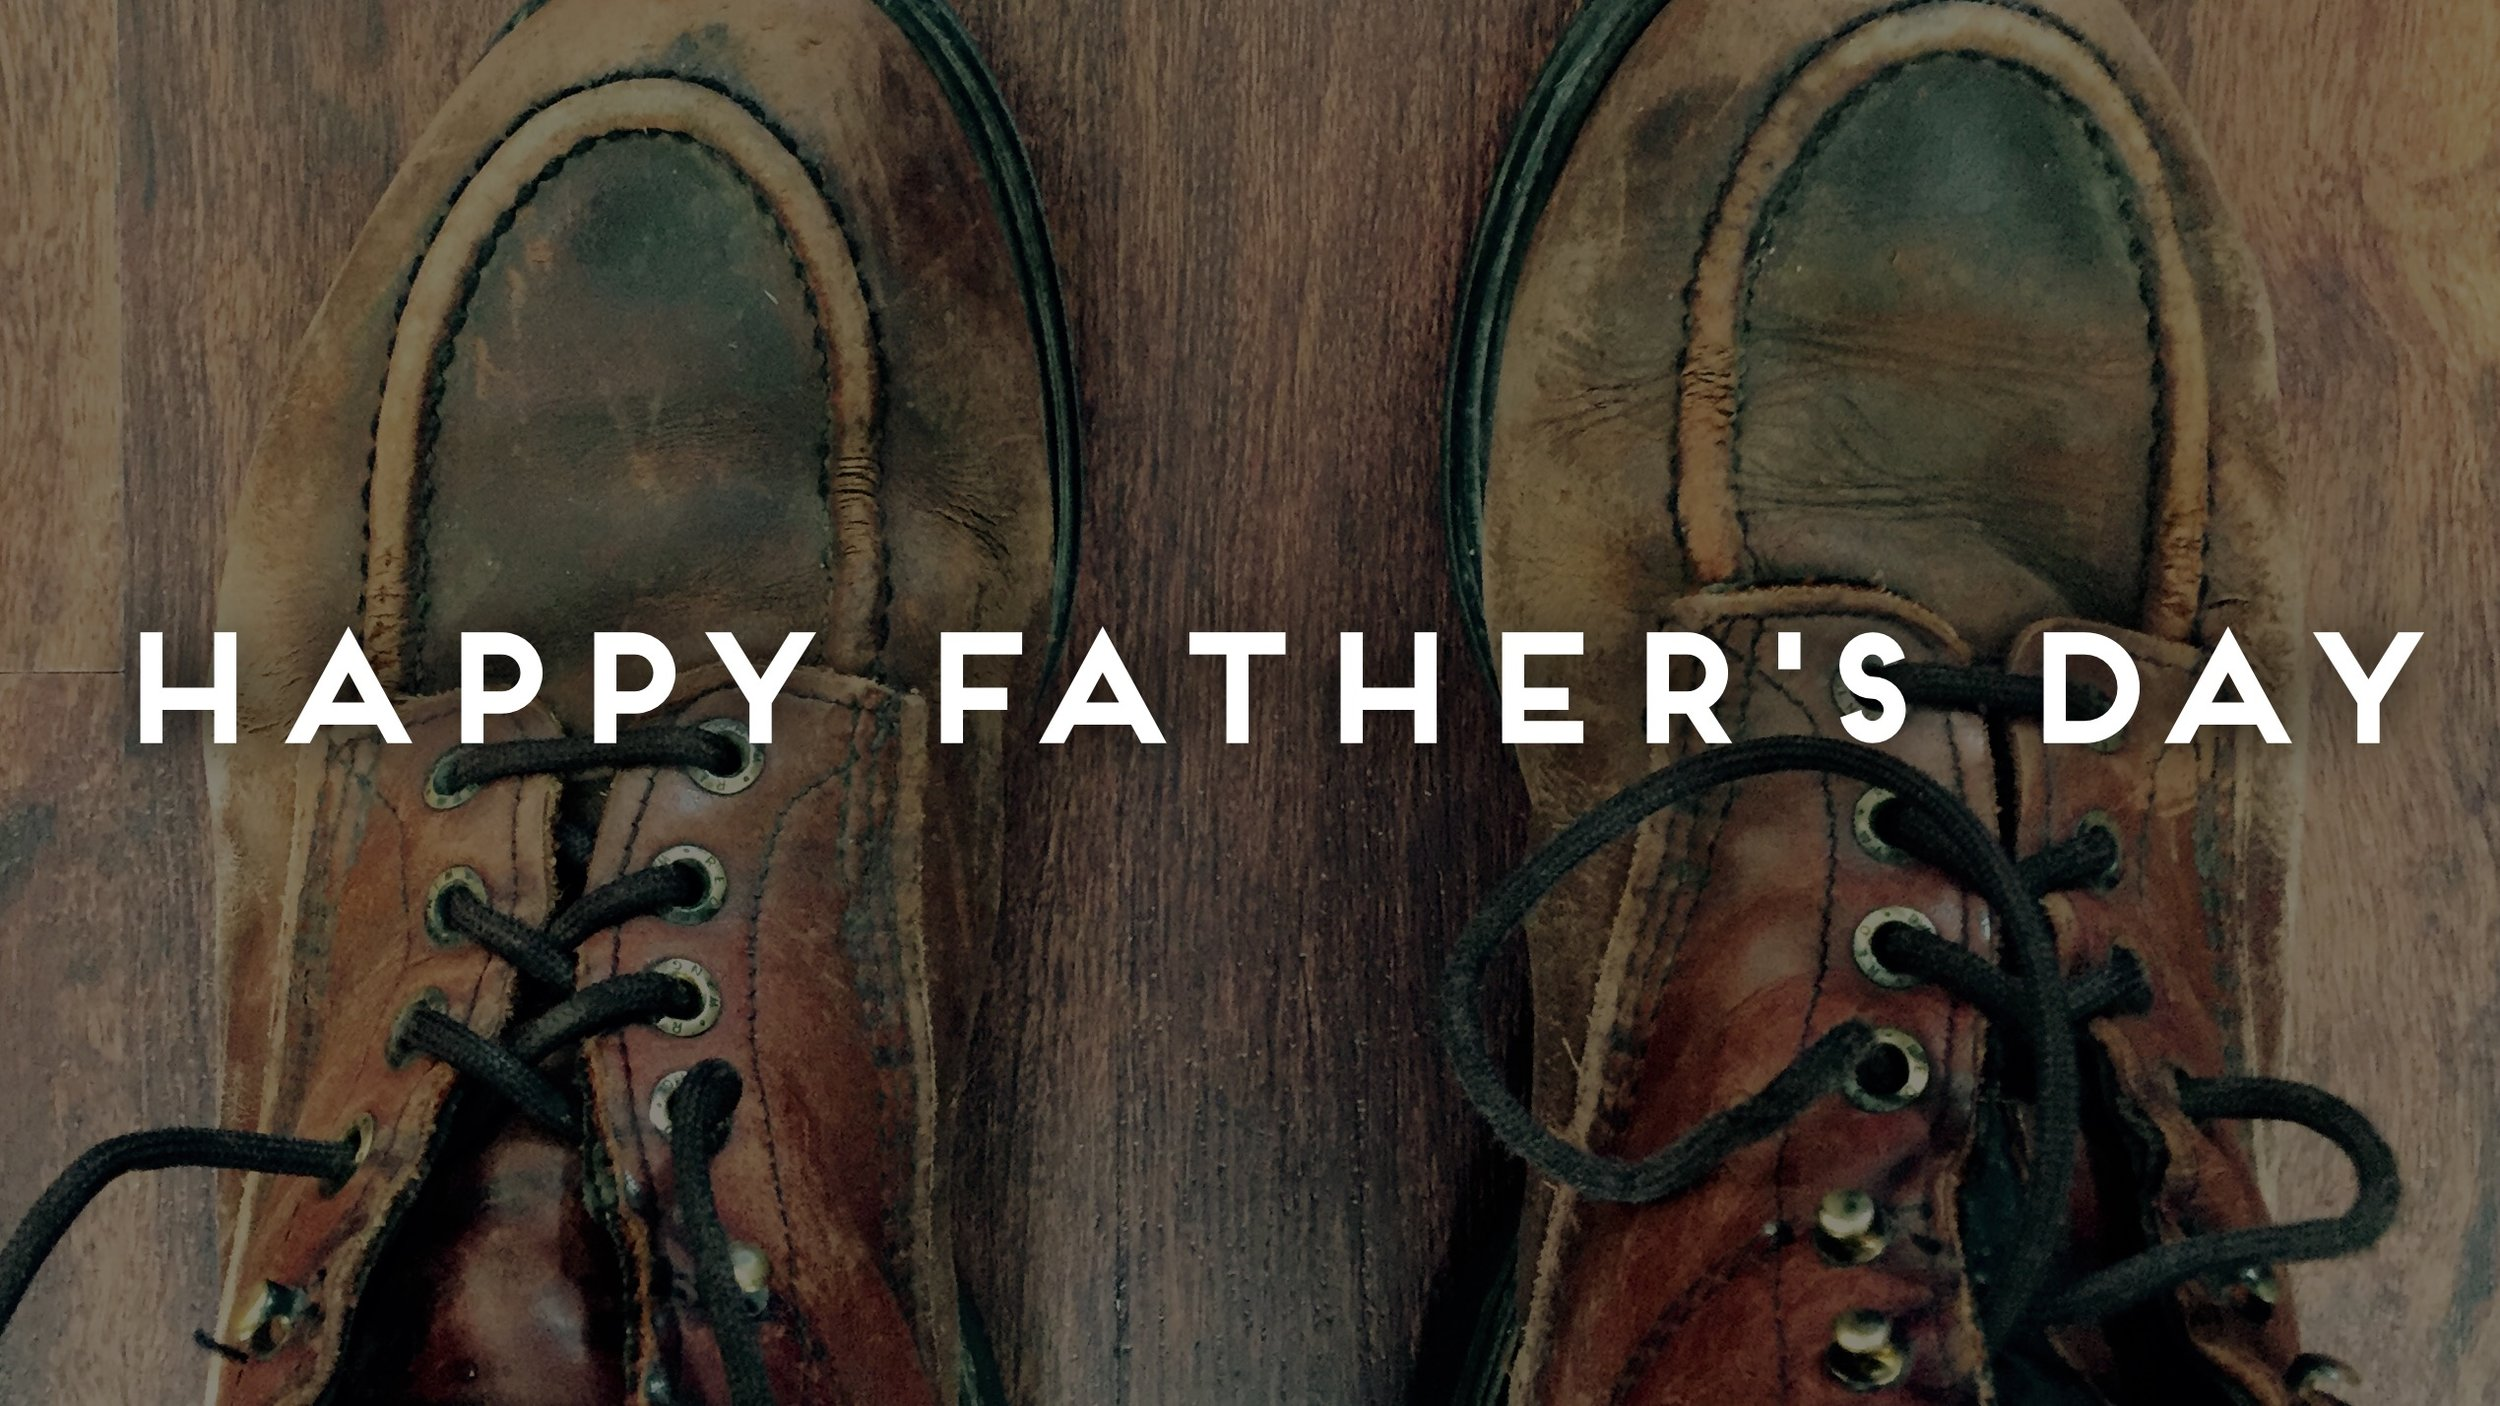 Fathers Day Boots - 2016 - Wallace Creative 16x9.JPG